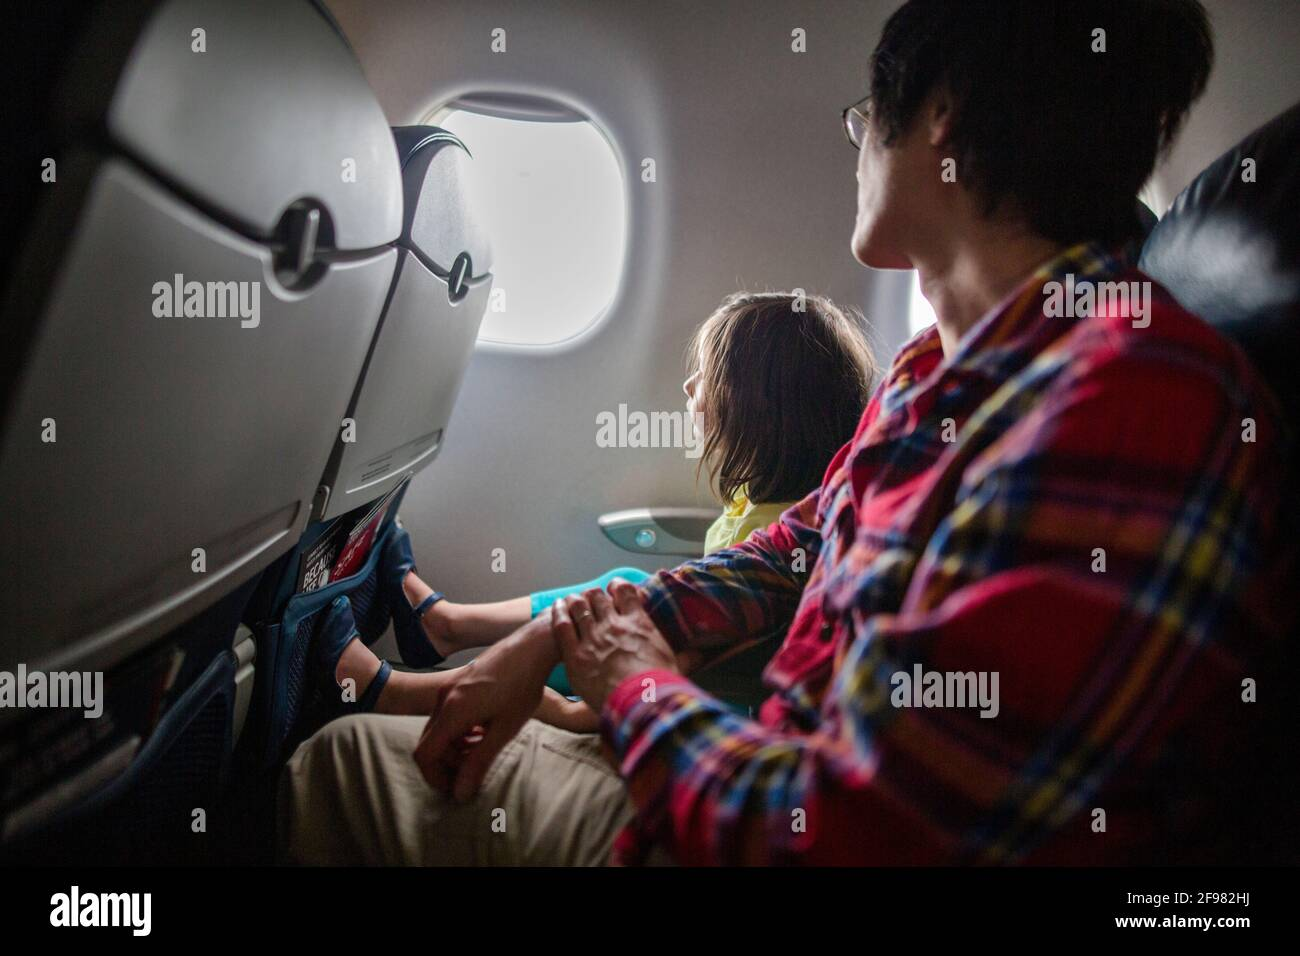 A little girl and father sit together on airplane looking out window Stock Photo